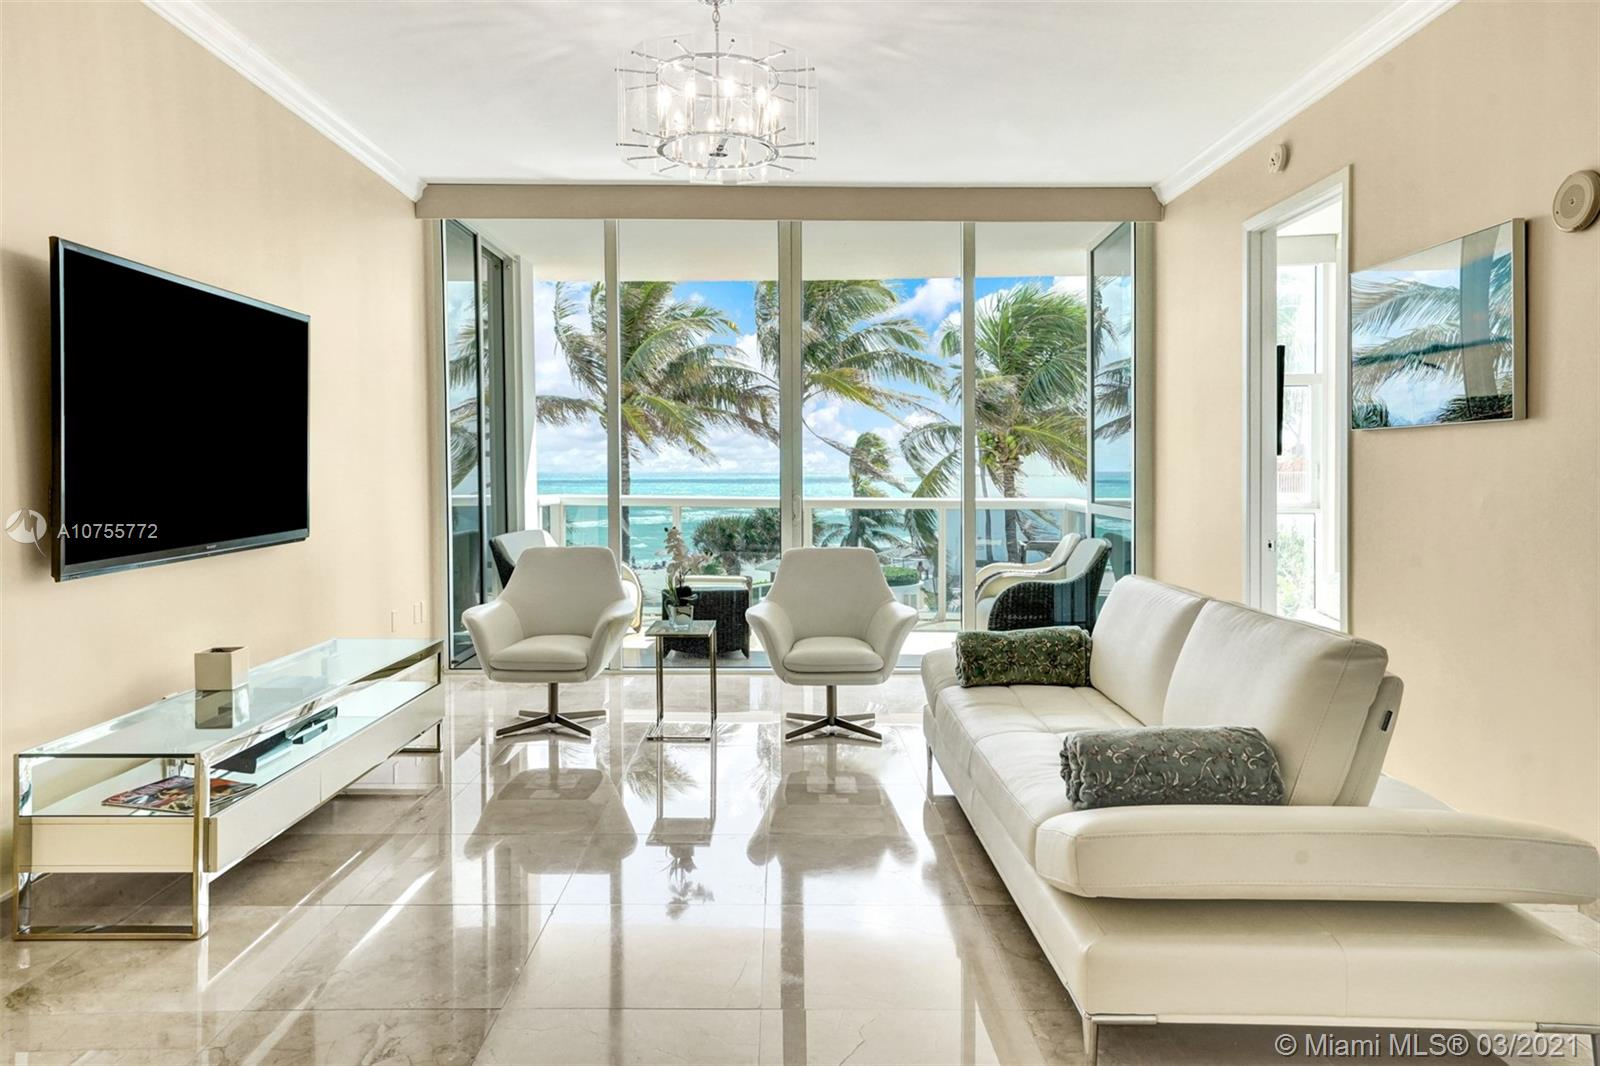 LUXURIOUS 2 BED/2.5 BATH RESIDENCE IN TRUMP PALACE OFFERS DIRECT OCEAN AND POOL VIEWS. EUROPEAN FULLY EQUIPPED KITCHEN WITH GRANITE COUNTERTOPS, STAINLESS STEEL APPLIANCES, MARBLE FLOORS, WINDOW TREATMENTS, CUSTOM CLOSETS, JACUZZI. EXCLUSIVE OCEAN FRONT PROPERTY WITH MANY POOLS, SPA, FITNESS CENTER, BUSINESS CENTER, BEACH, ROOM SERVICE, CONCIERGE, 5 STAR AMENITIES, 24HR VALET & MORE.